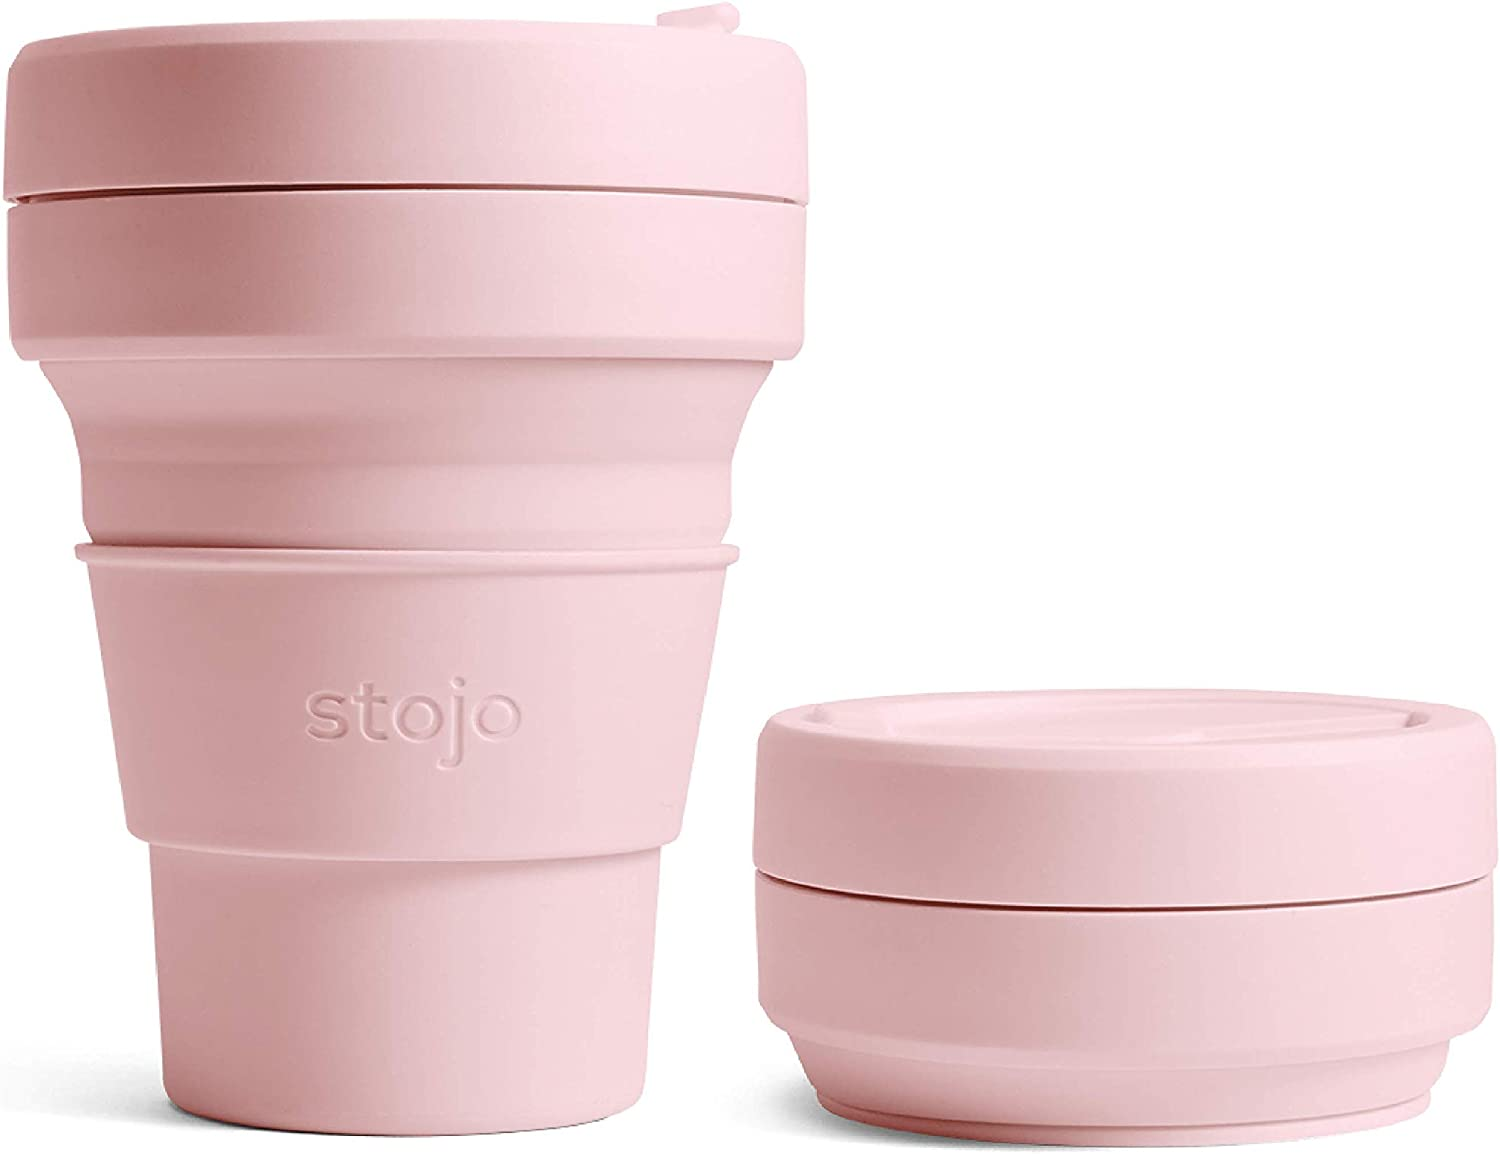 Stojo On The Go Coffee Cup | Mini Collapsible Silicone Travel Cup </div>